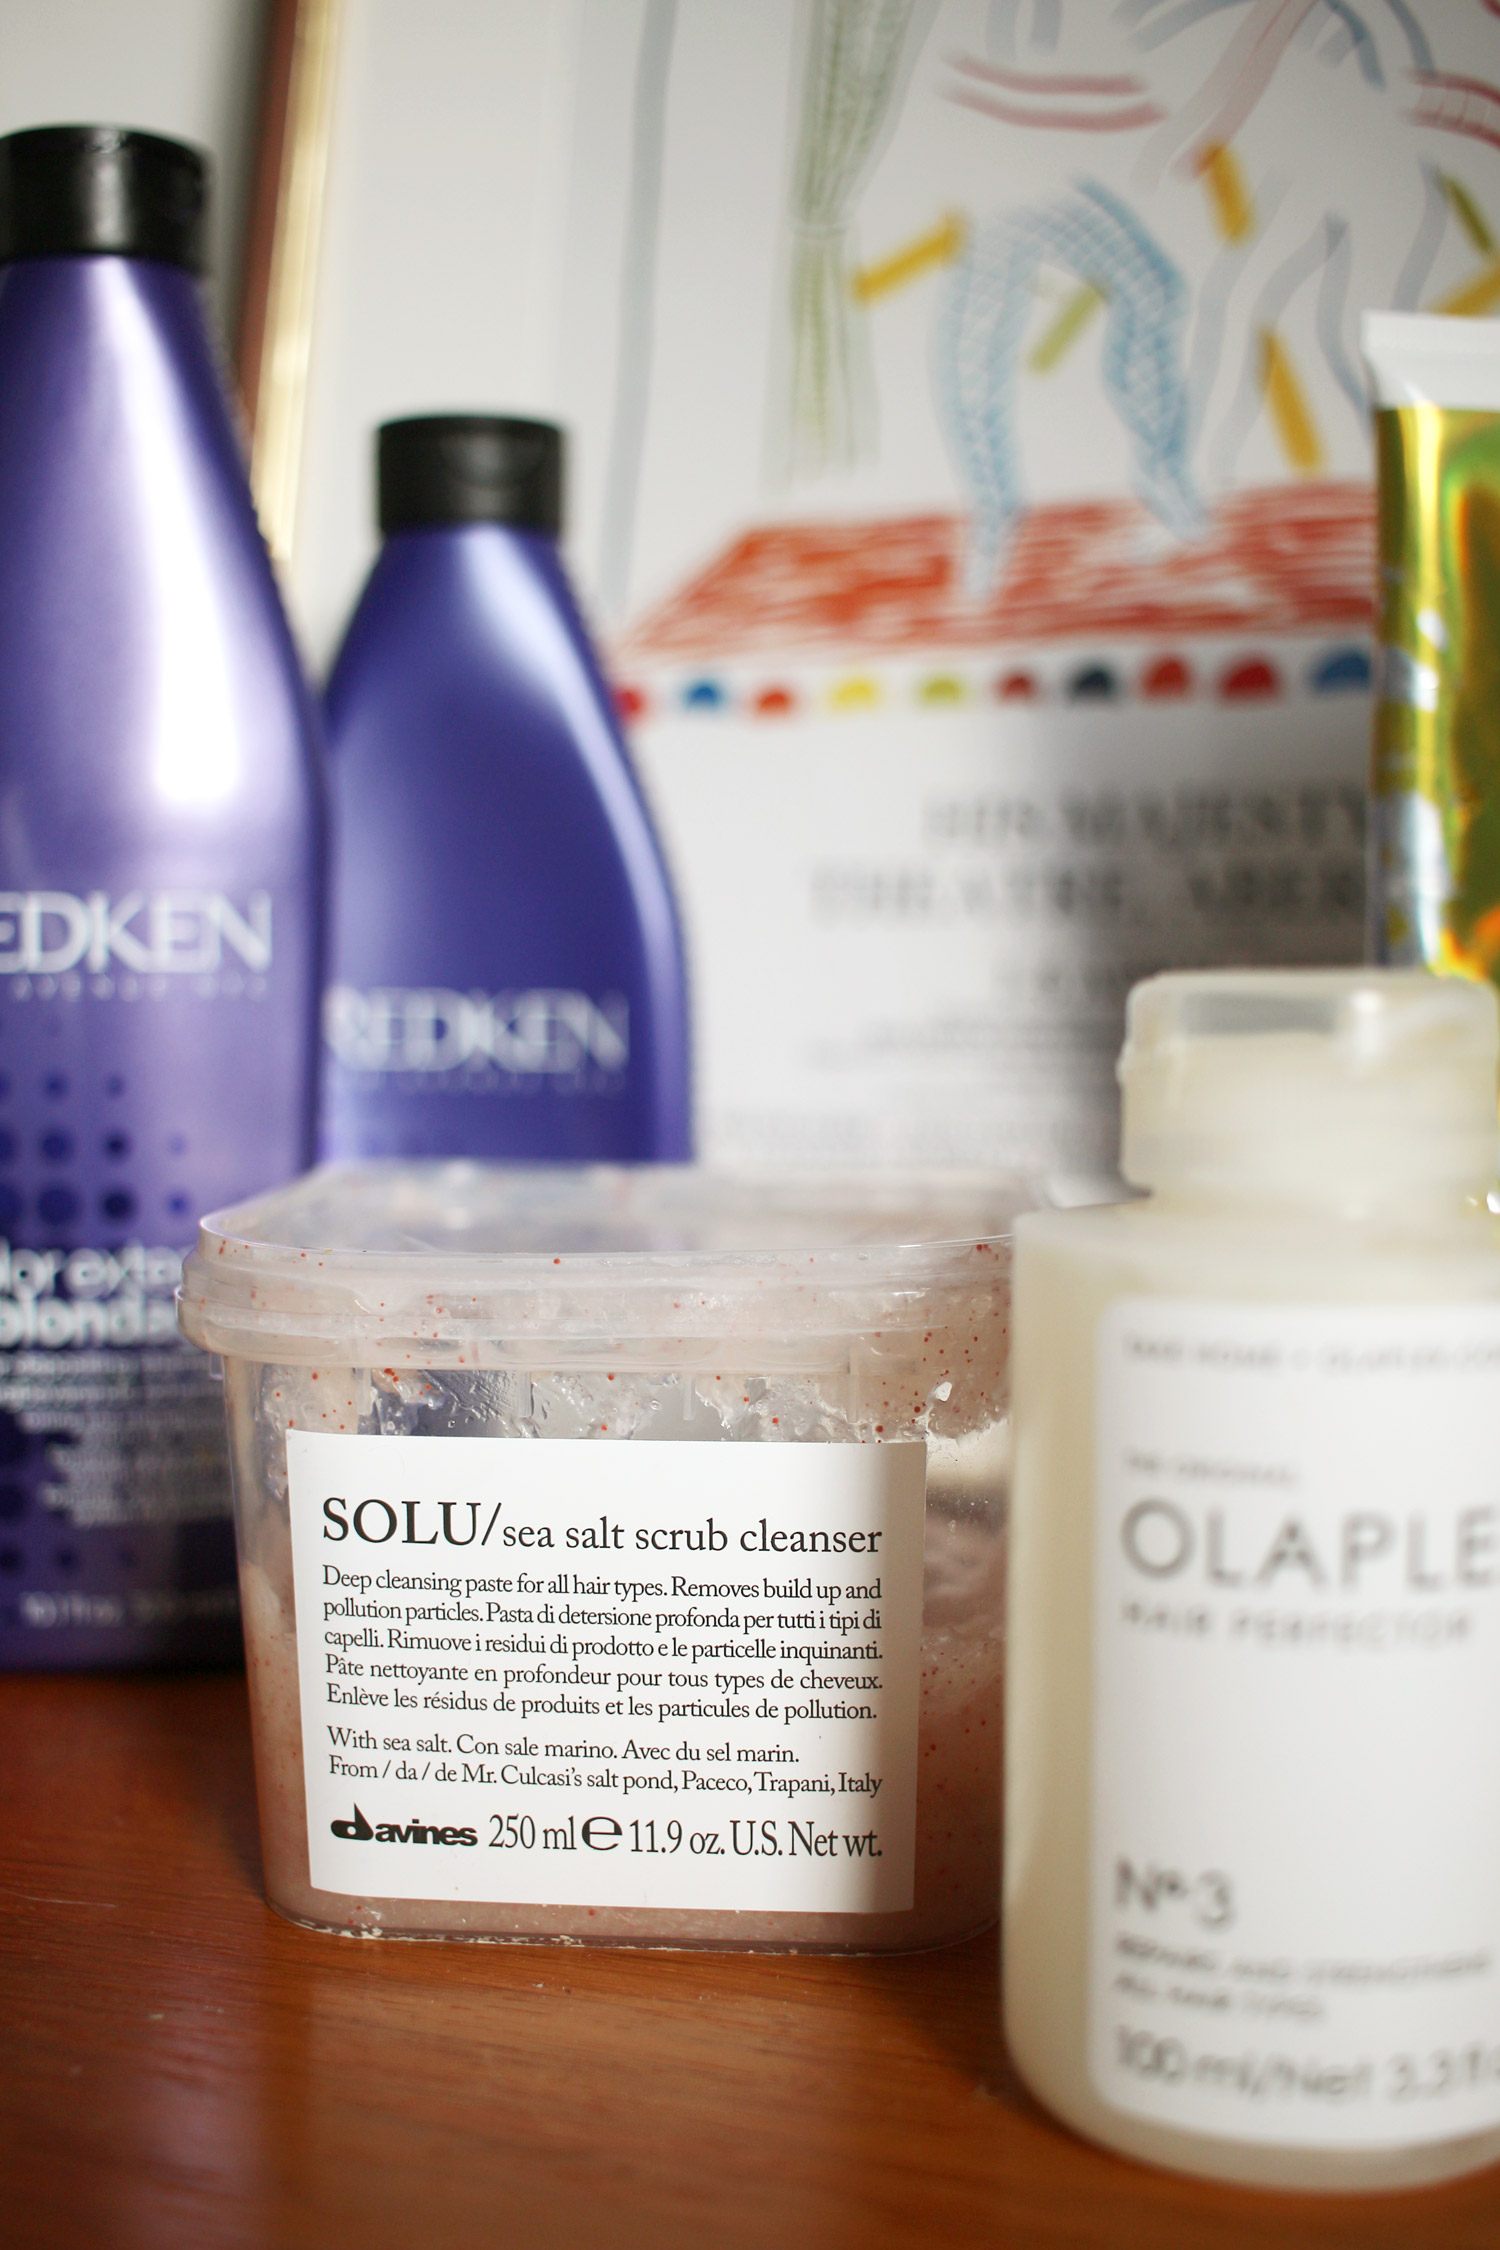 hair-products-davines-review-redken-blondage-thelovecatsinc-8